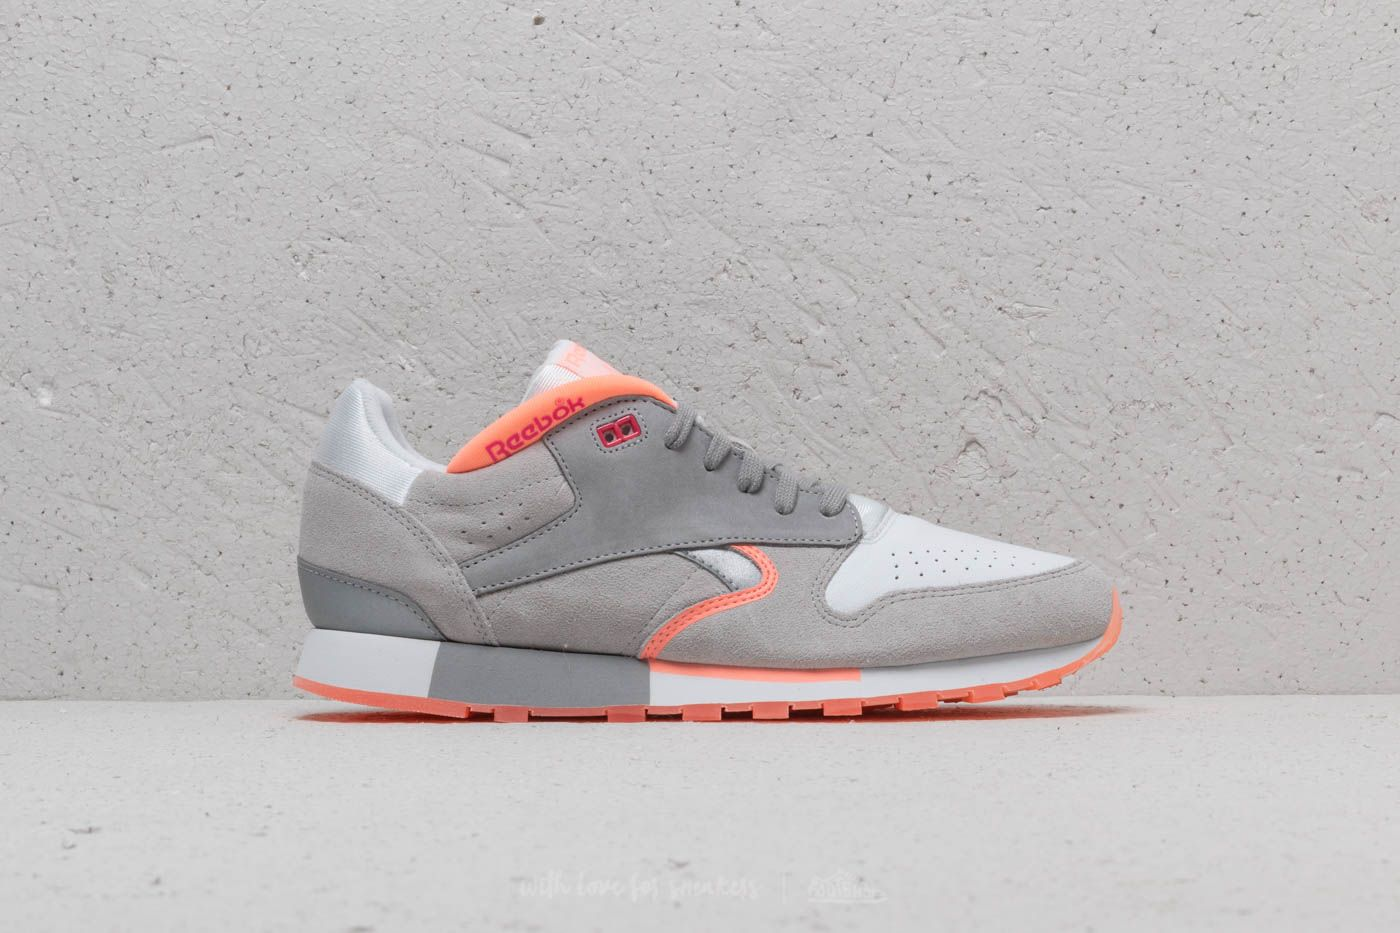 Reebok Classic Leather Urge White  S Grey  D Pink  Pink at a great 36c6030cb